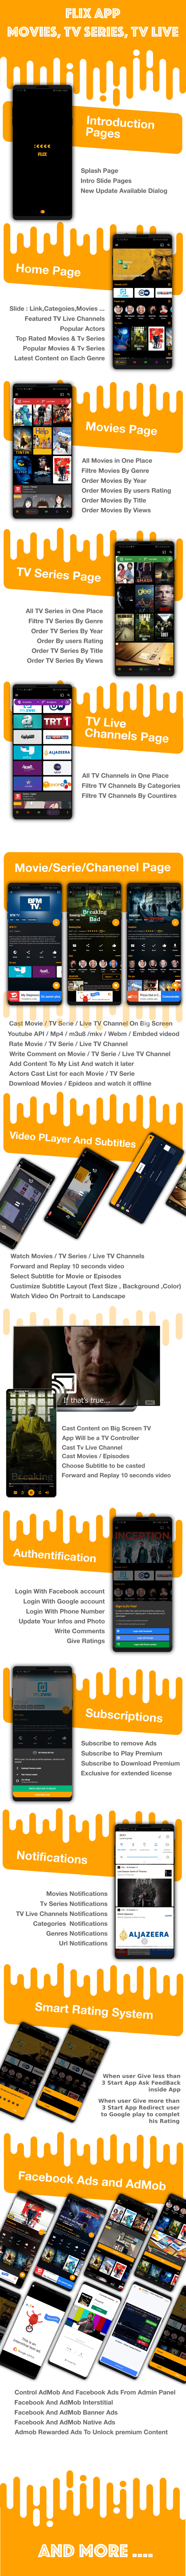 Flix App Movies - TV Series - Live TV Channels - TV Cast - 4